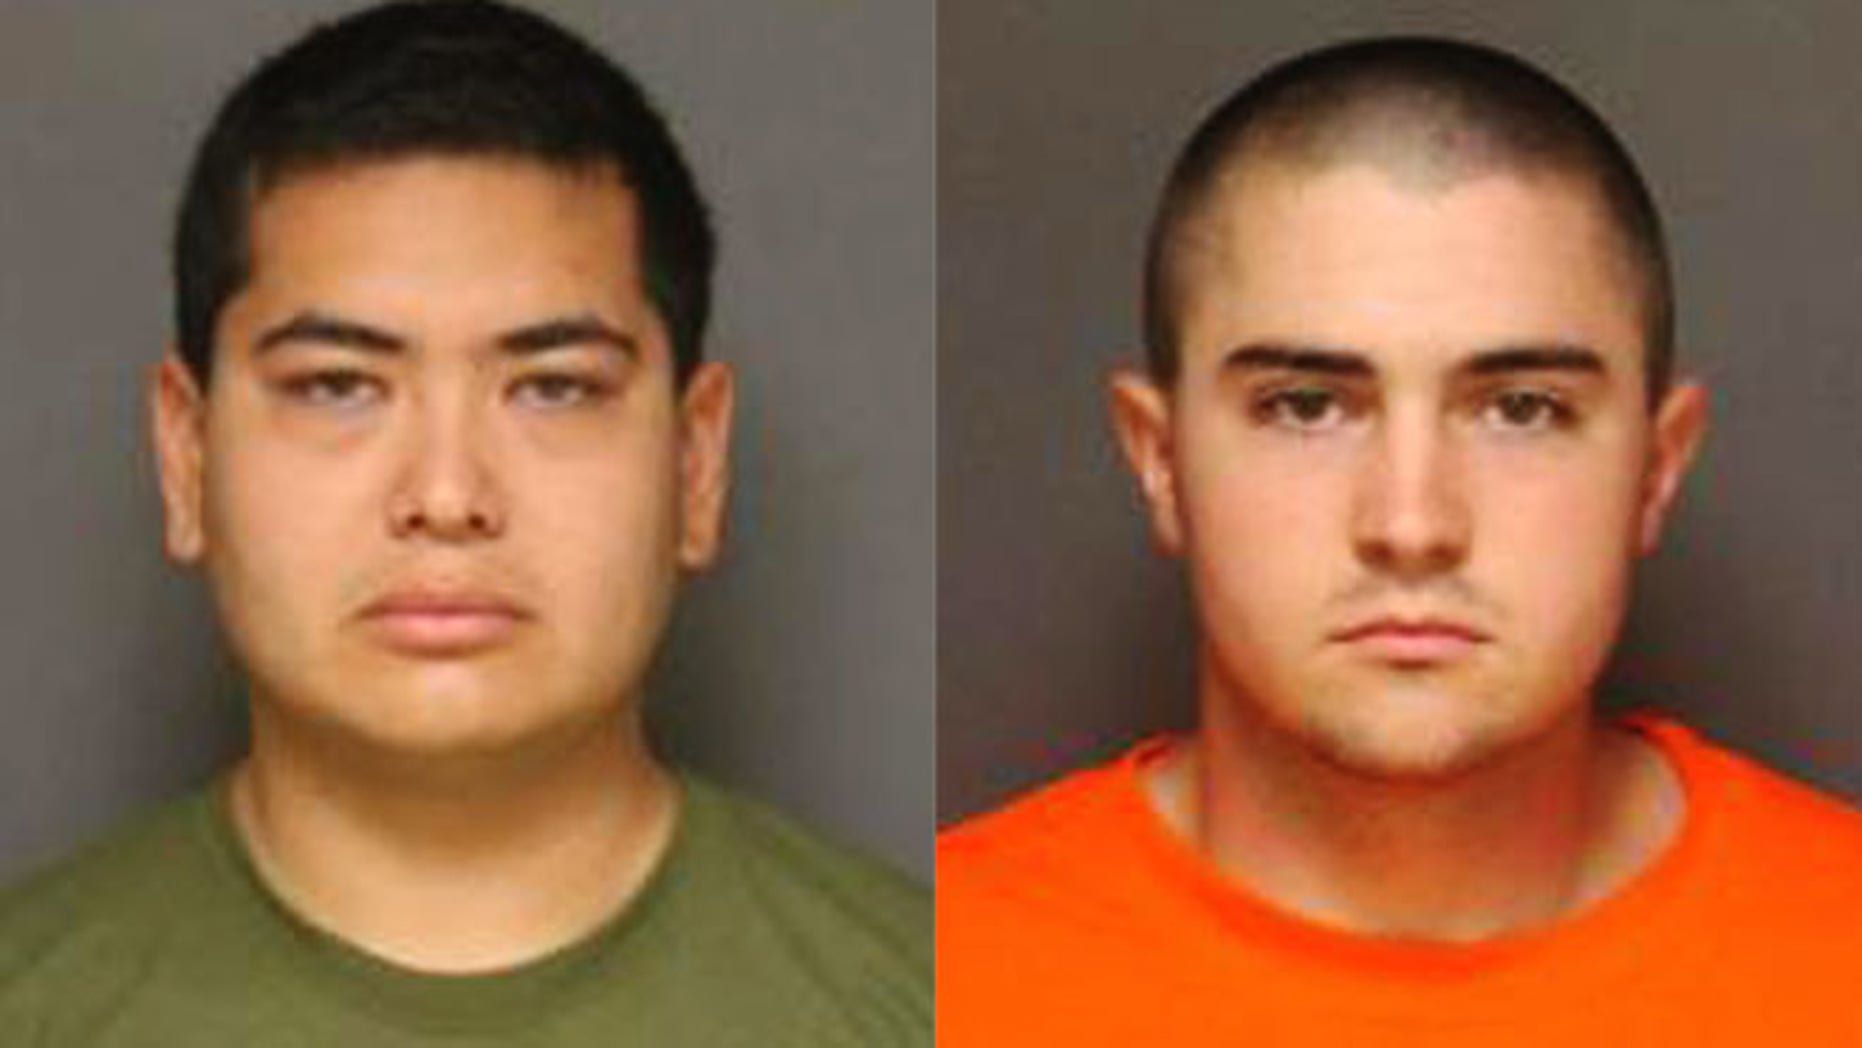 These photos released by the Fullerton, Calif., Police Department show Frank Felix, 25 (left) and Josh Acosta, 21, (right) who were arrested and jailed in connection with the murders of two men and a woman at a Fullerton home. (Fullerton Police Department via AP)